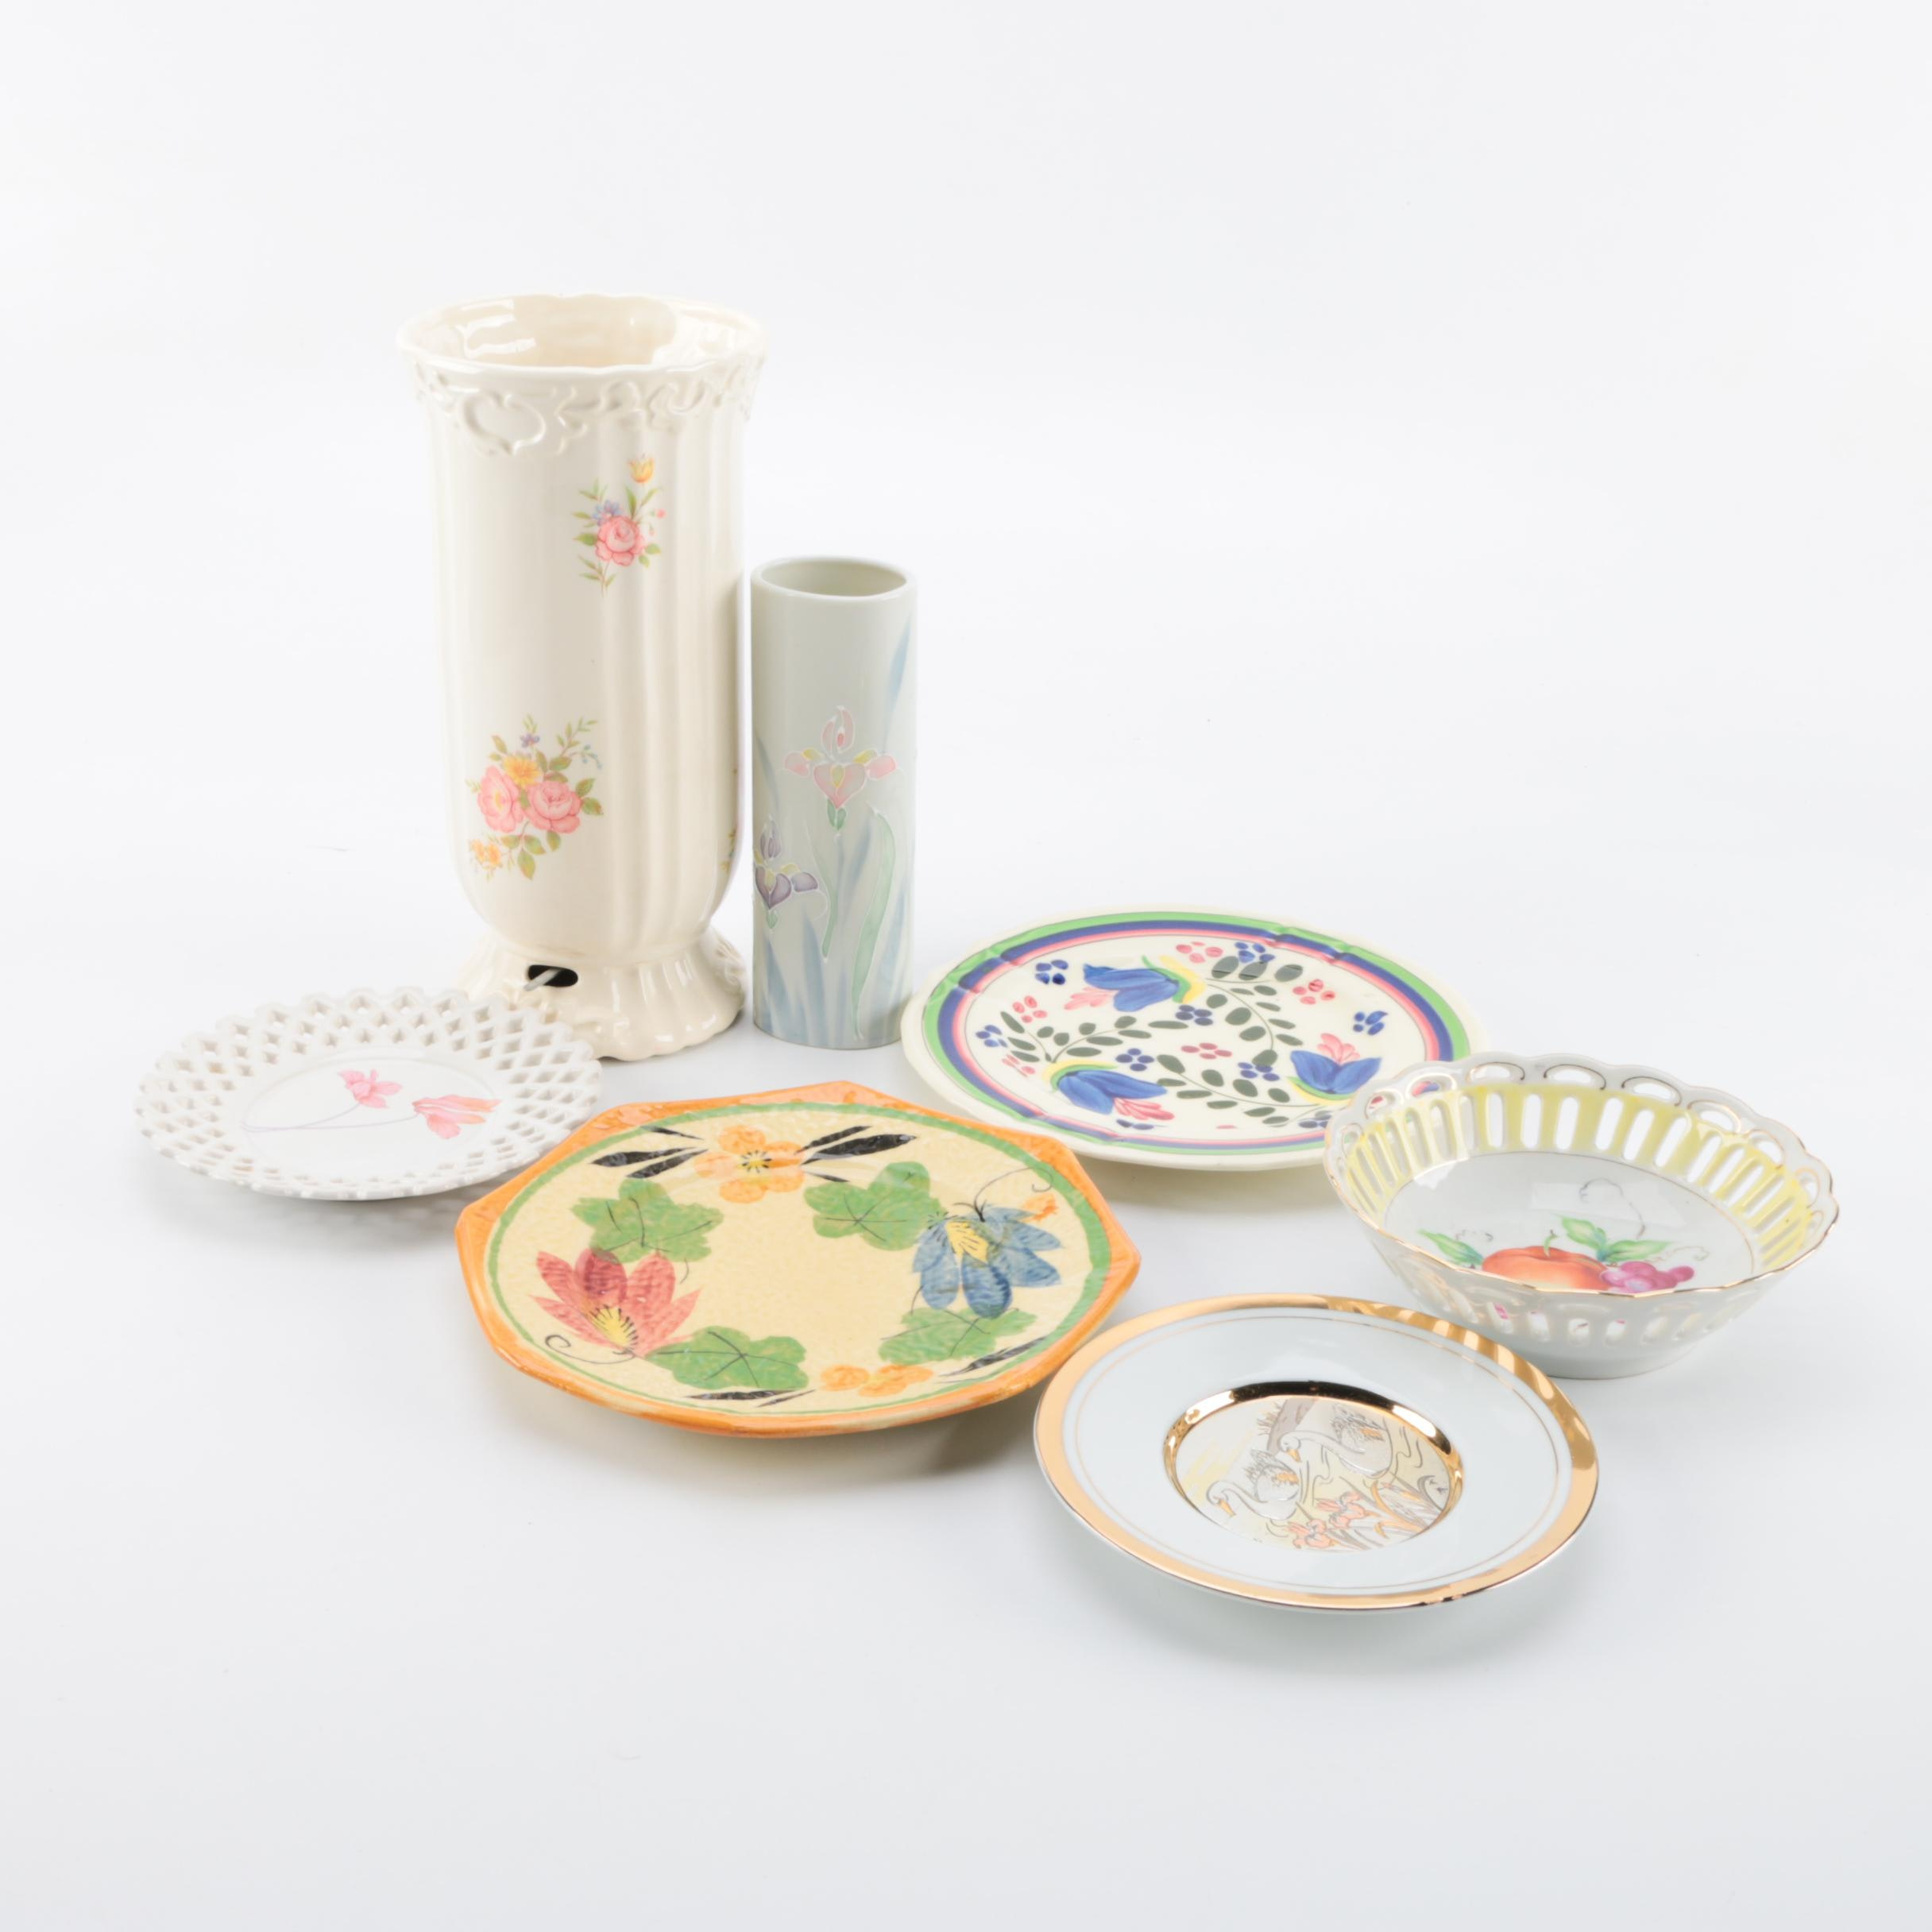 Assortment of China and Porcelain Decorative Pieces